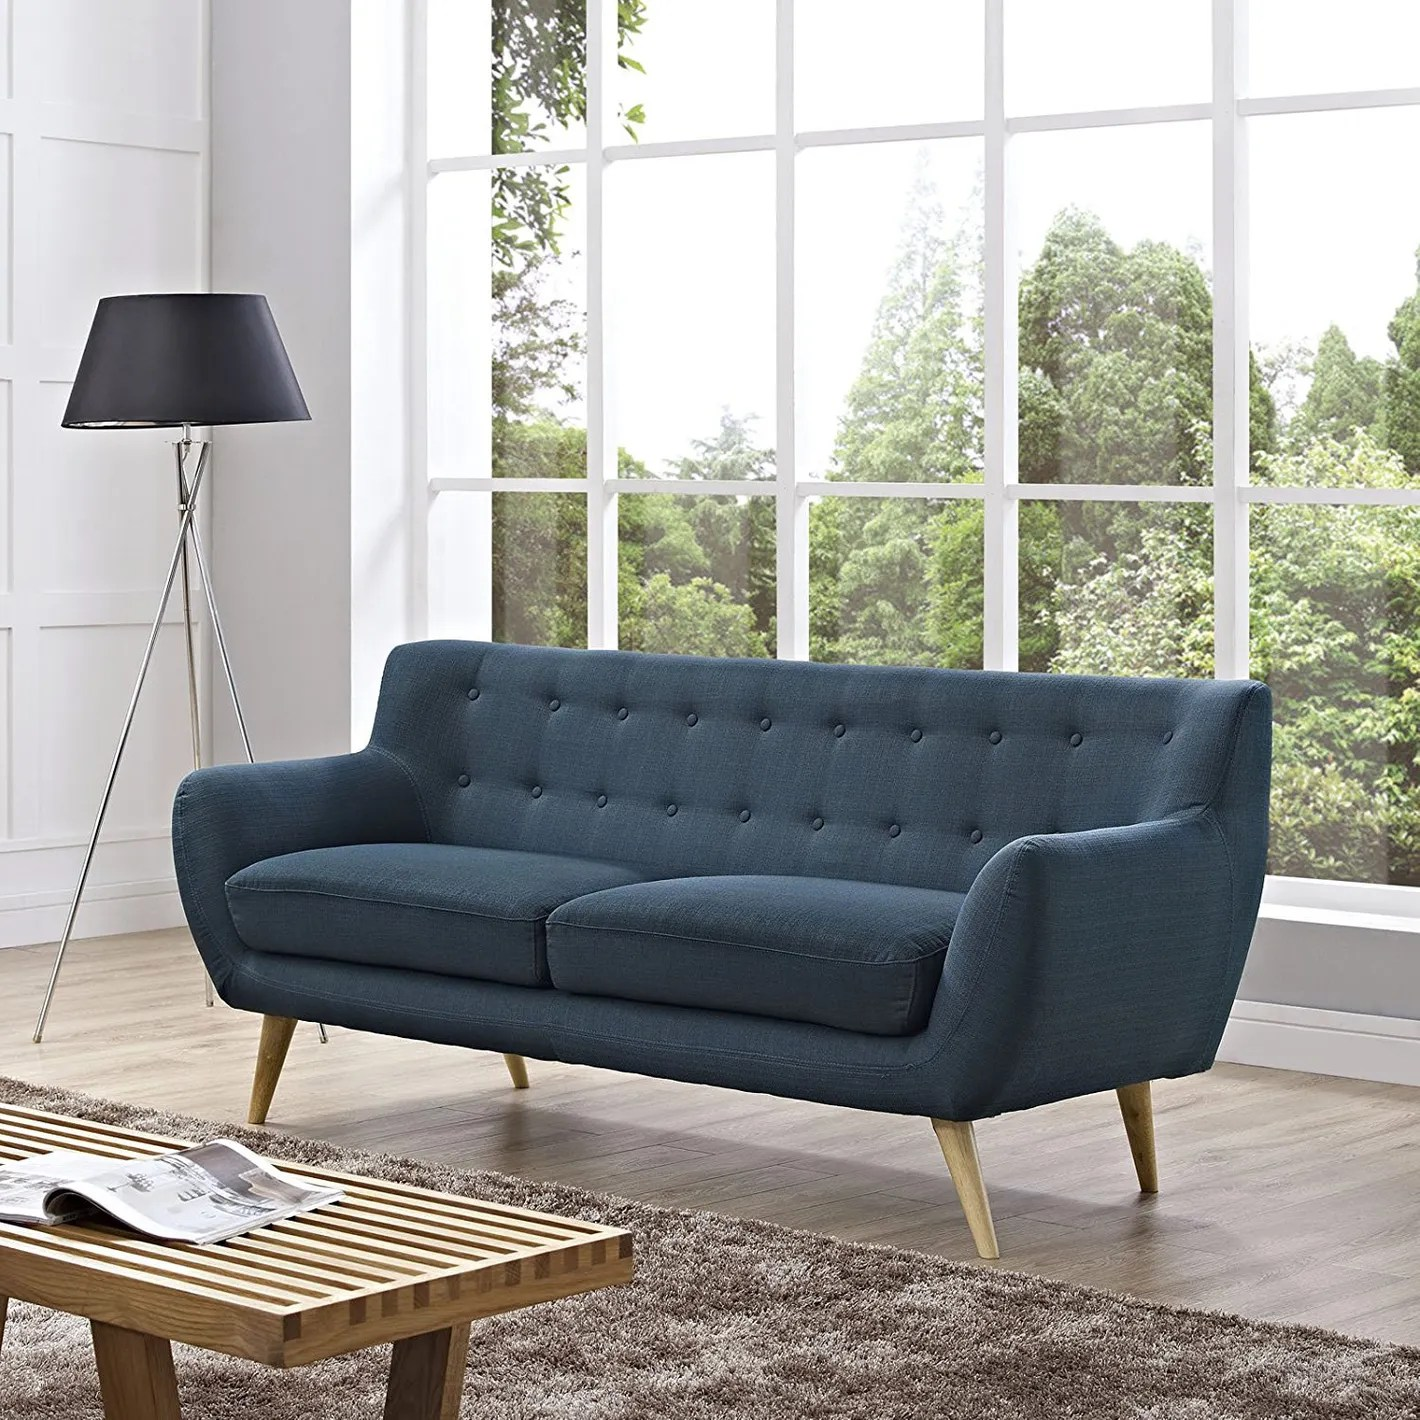 Bettsofas Micasa Bet Sofa Chair